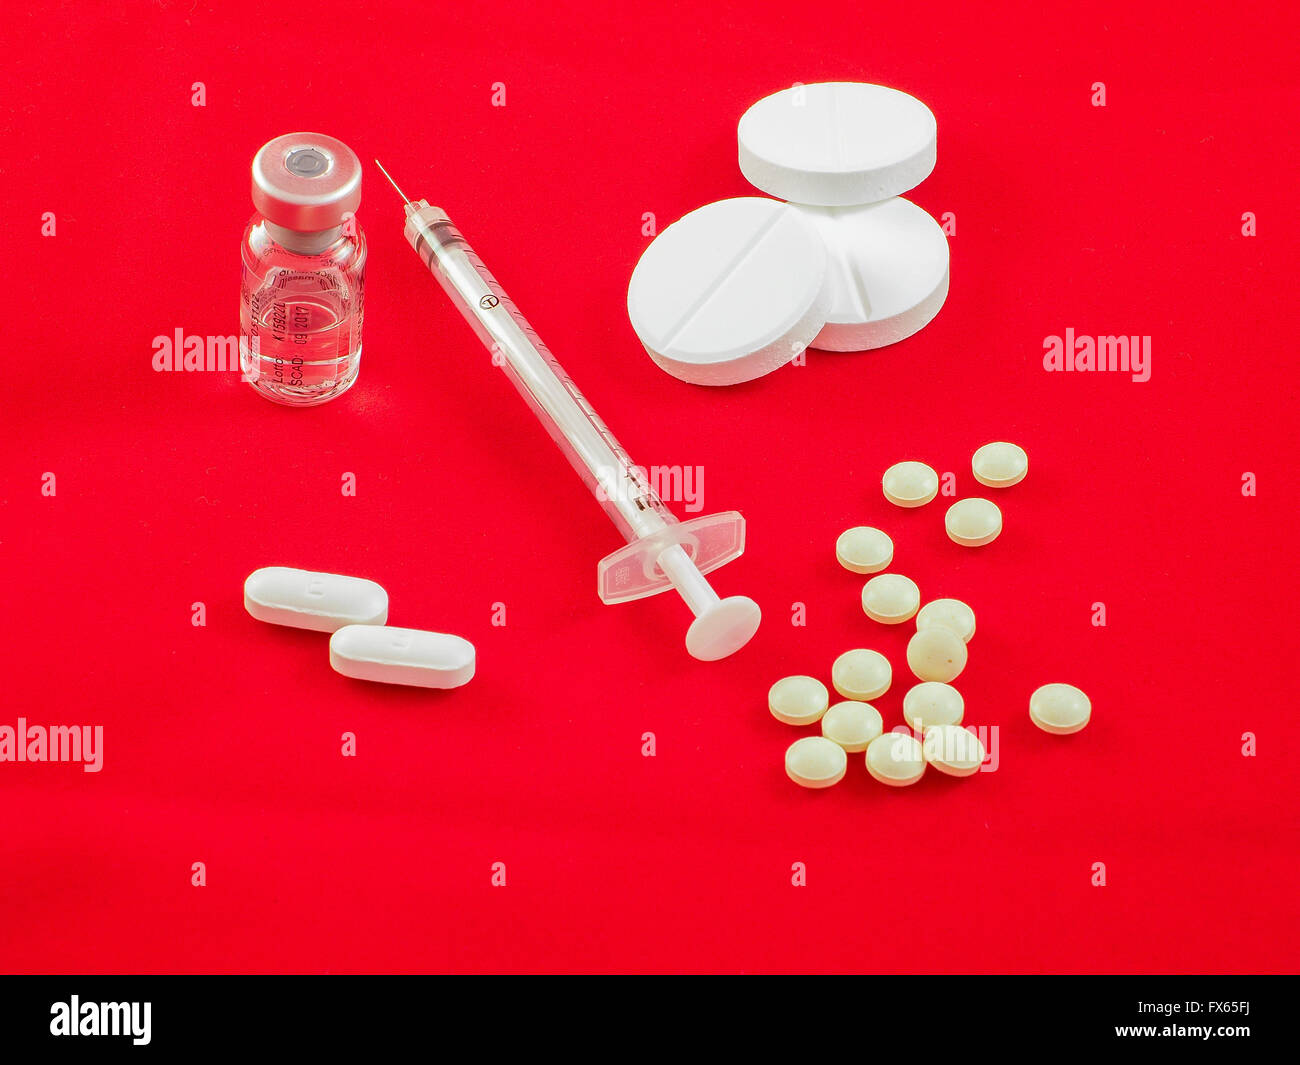 Several pills and caplets with different shapes, syringe and medecin bottle on red background. - Stock Image